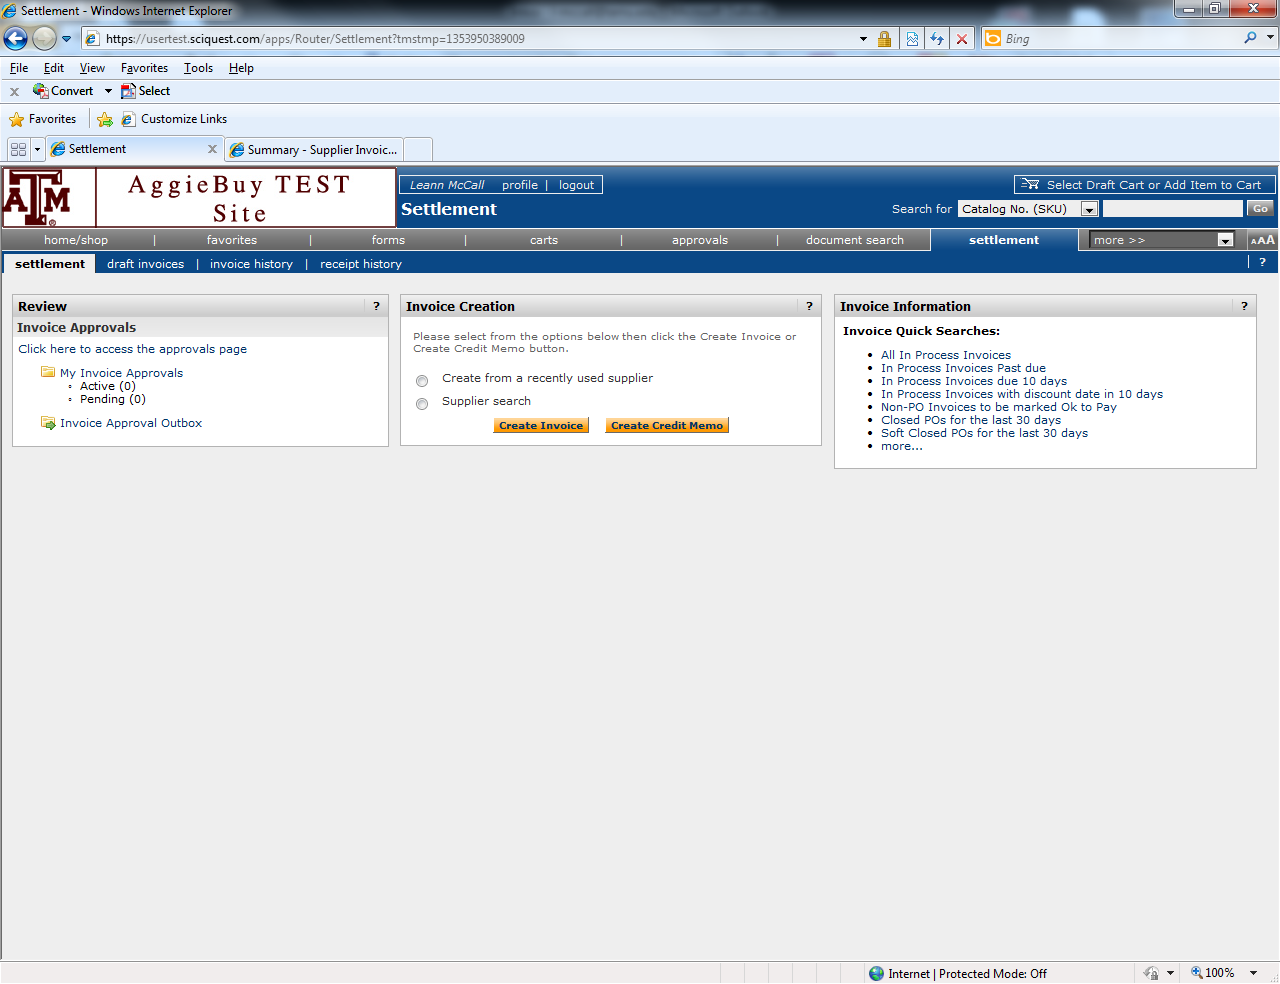 CREATING NON-PO BASED INVOICES IN AGGIEBUY Click on the